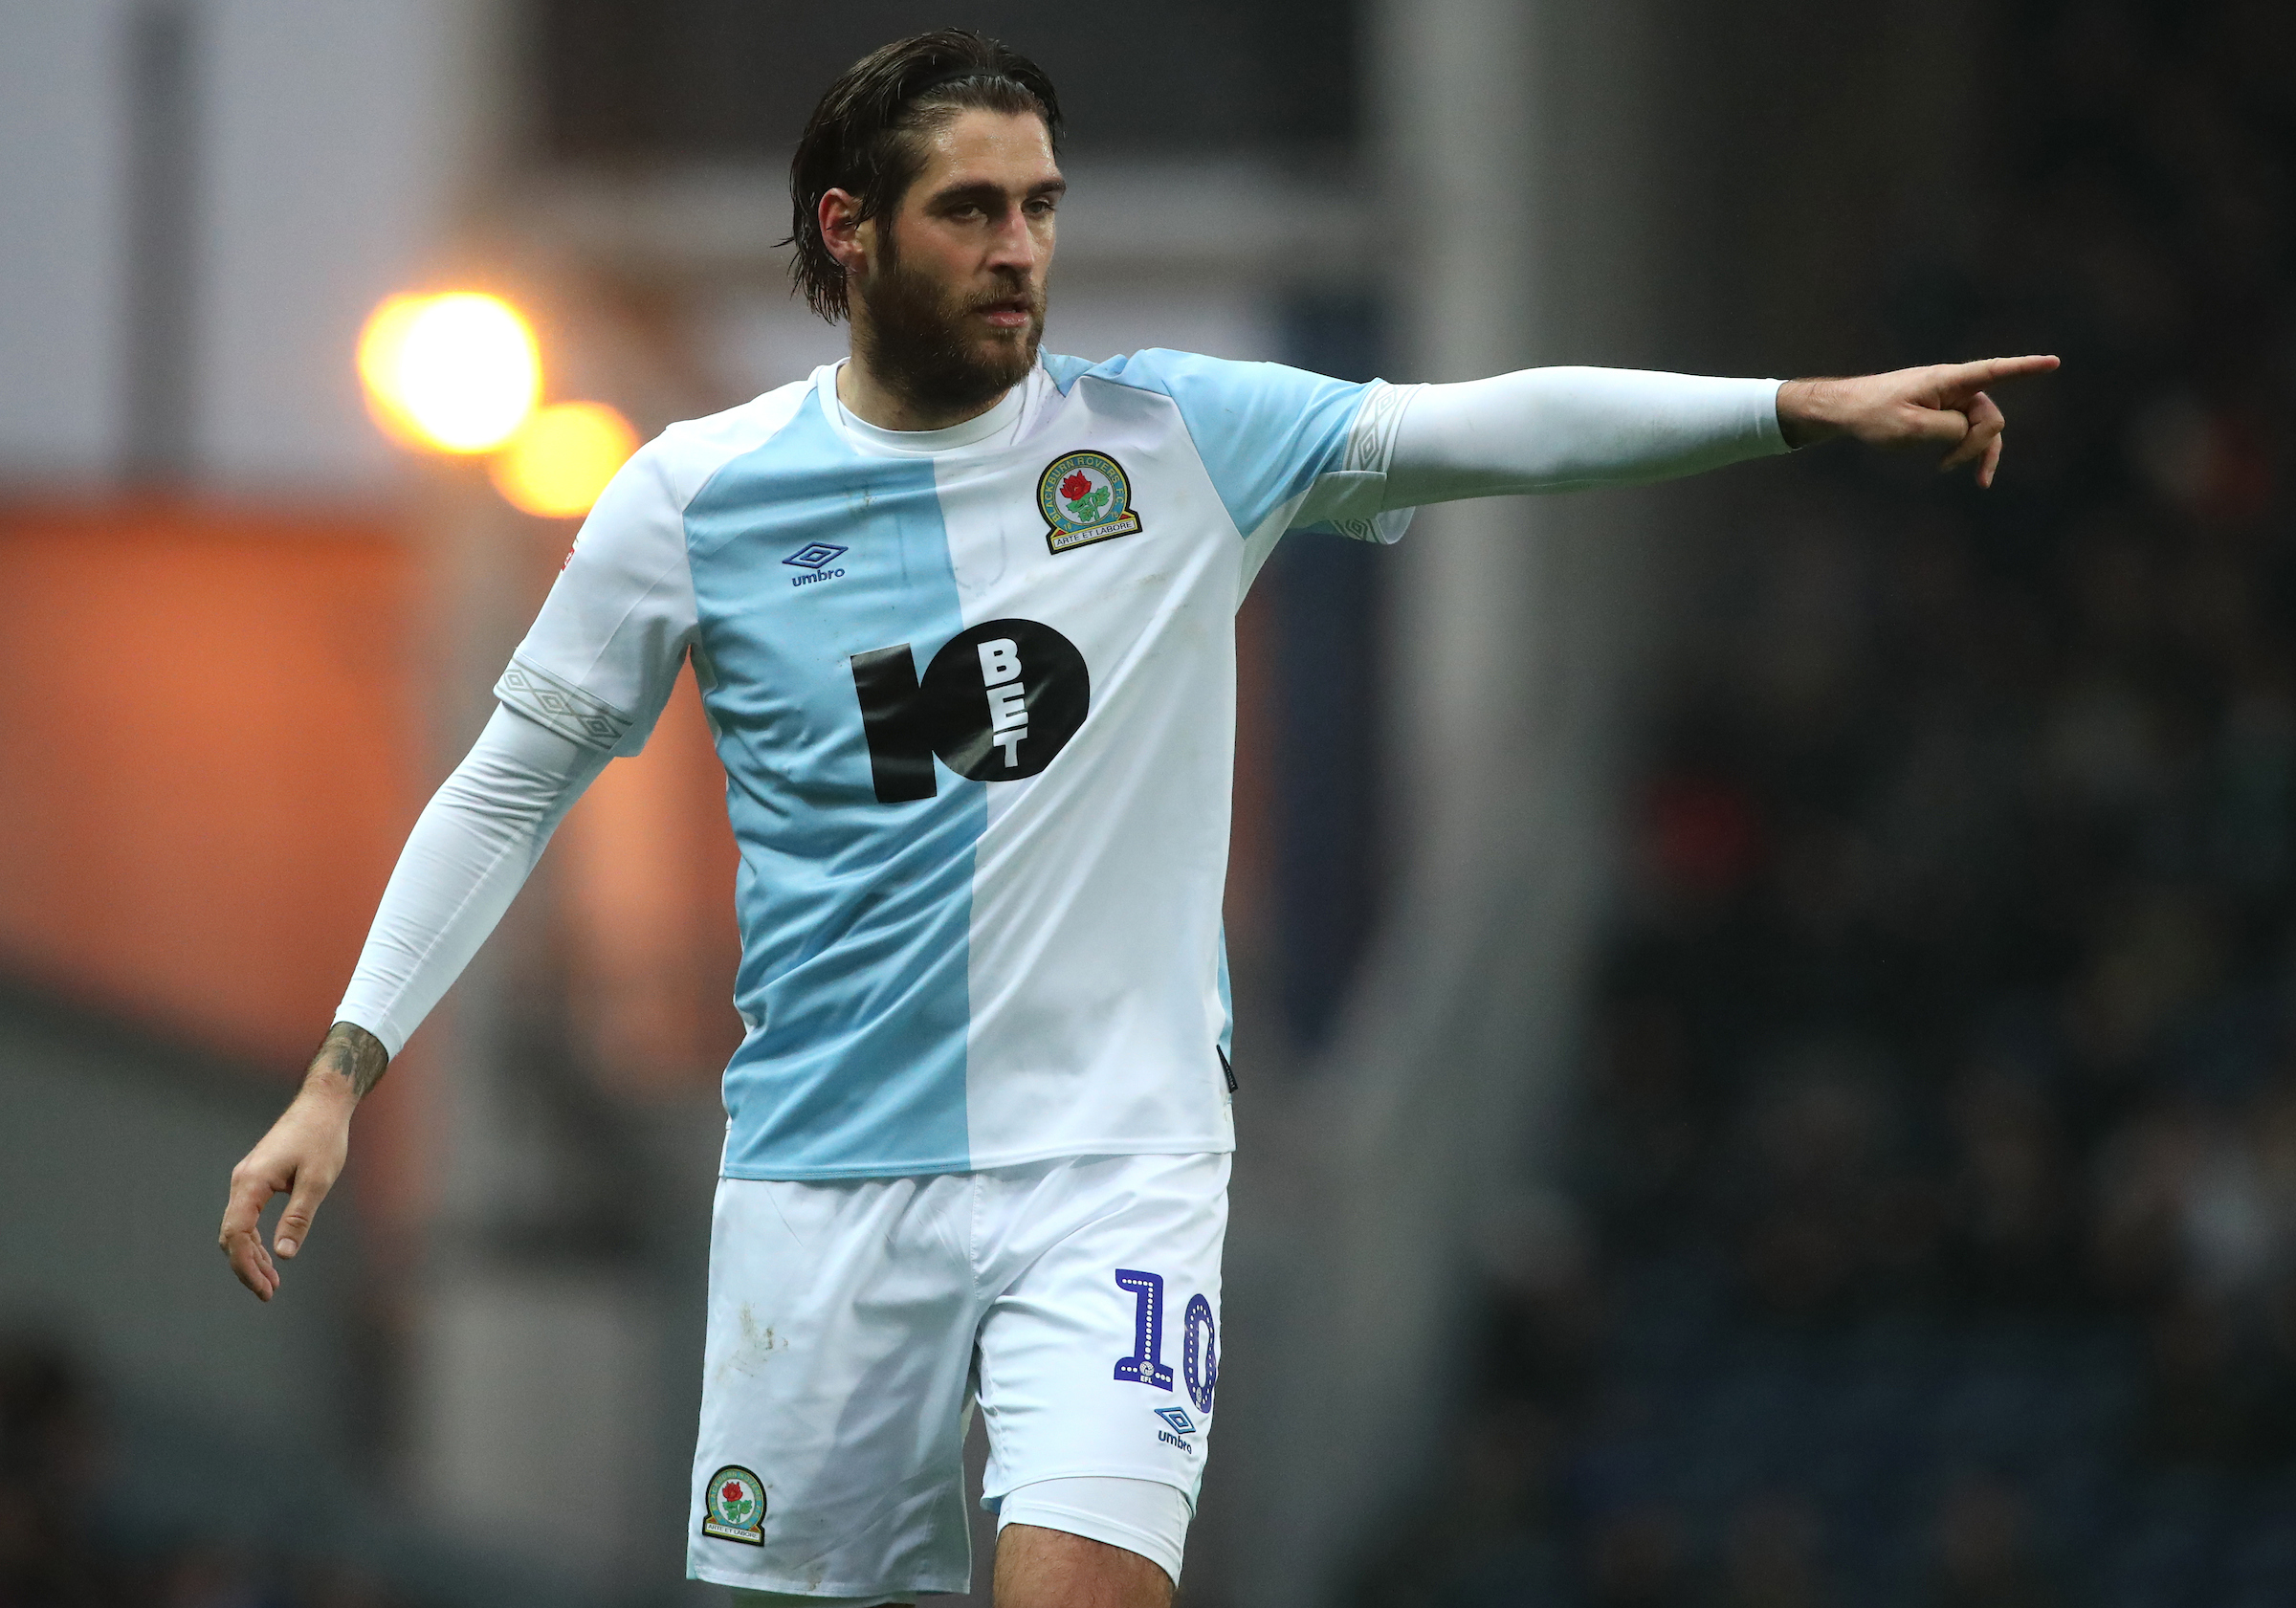 Danny Graham will return to former club Middlesbrough with Rovers this weekend